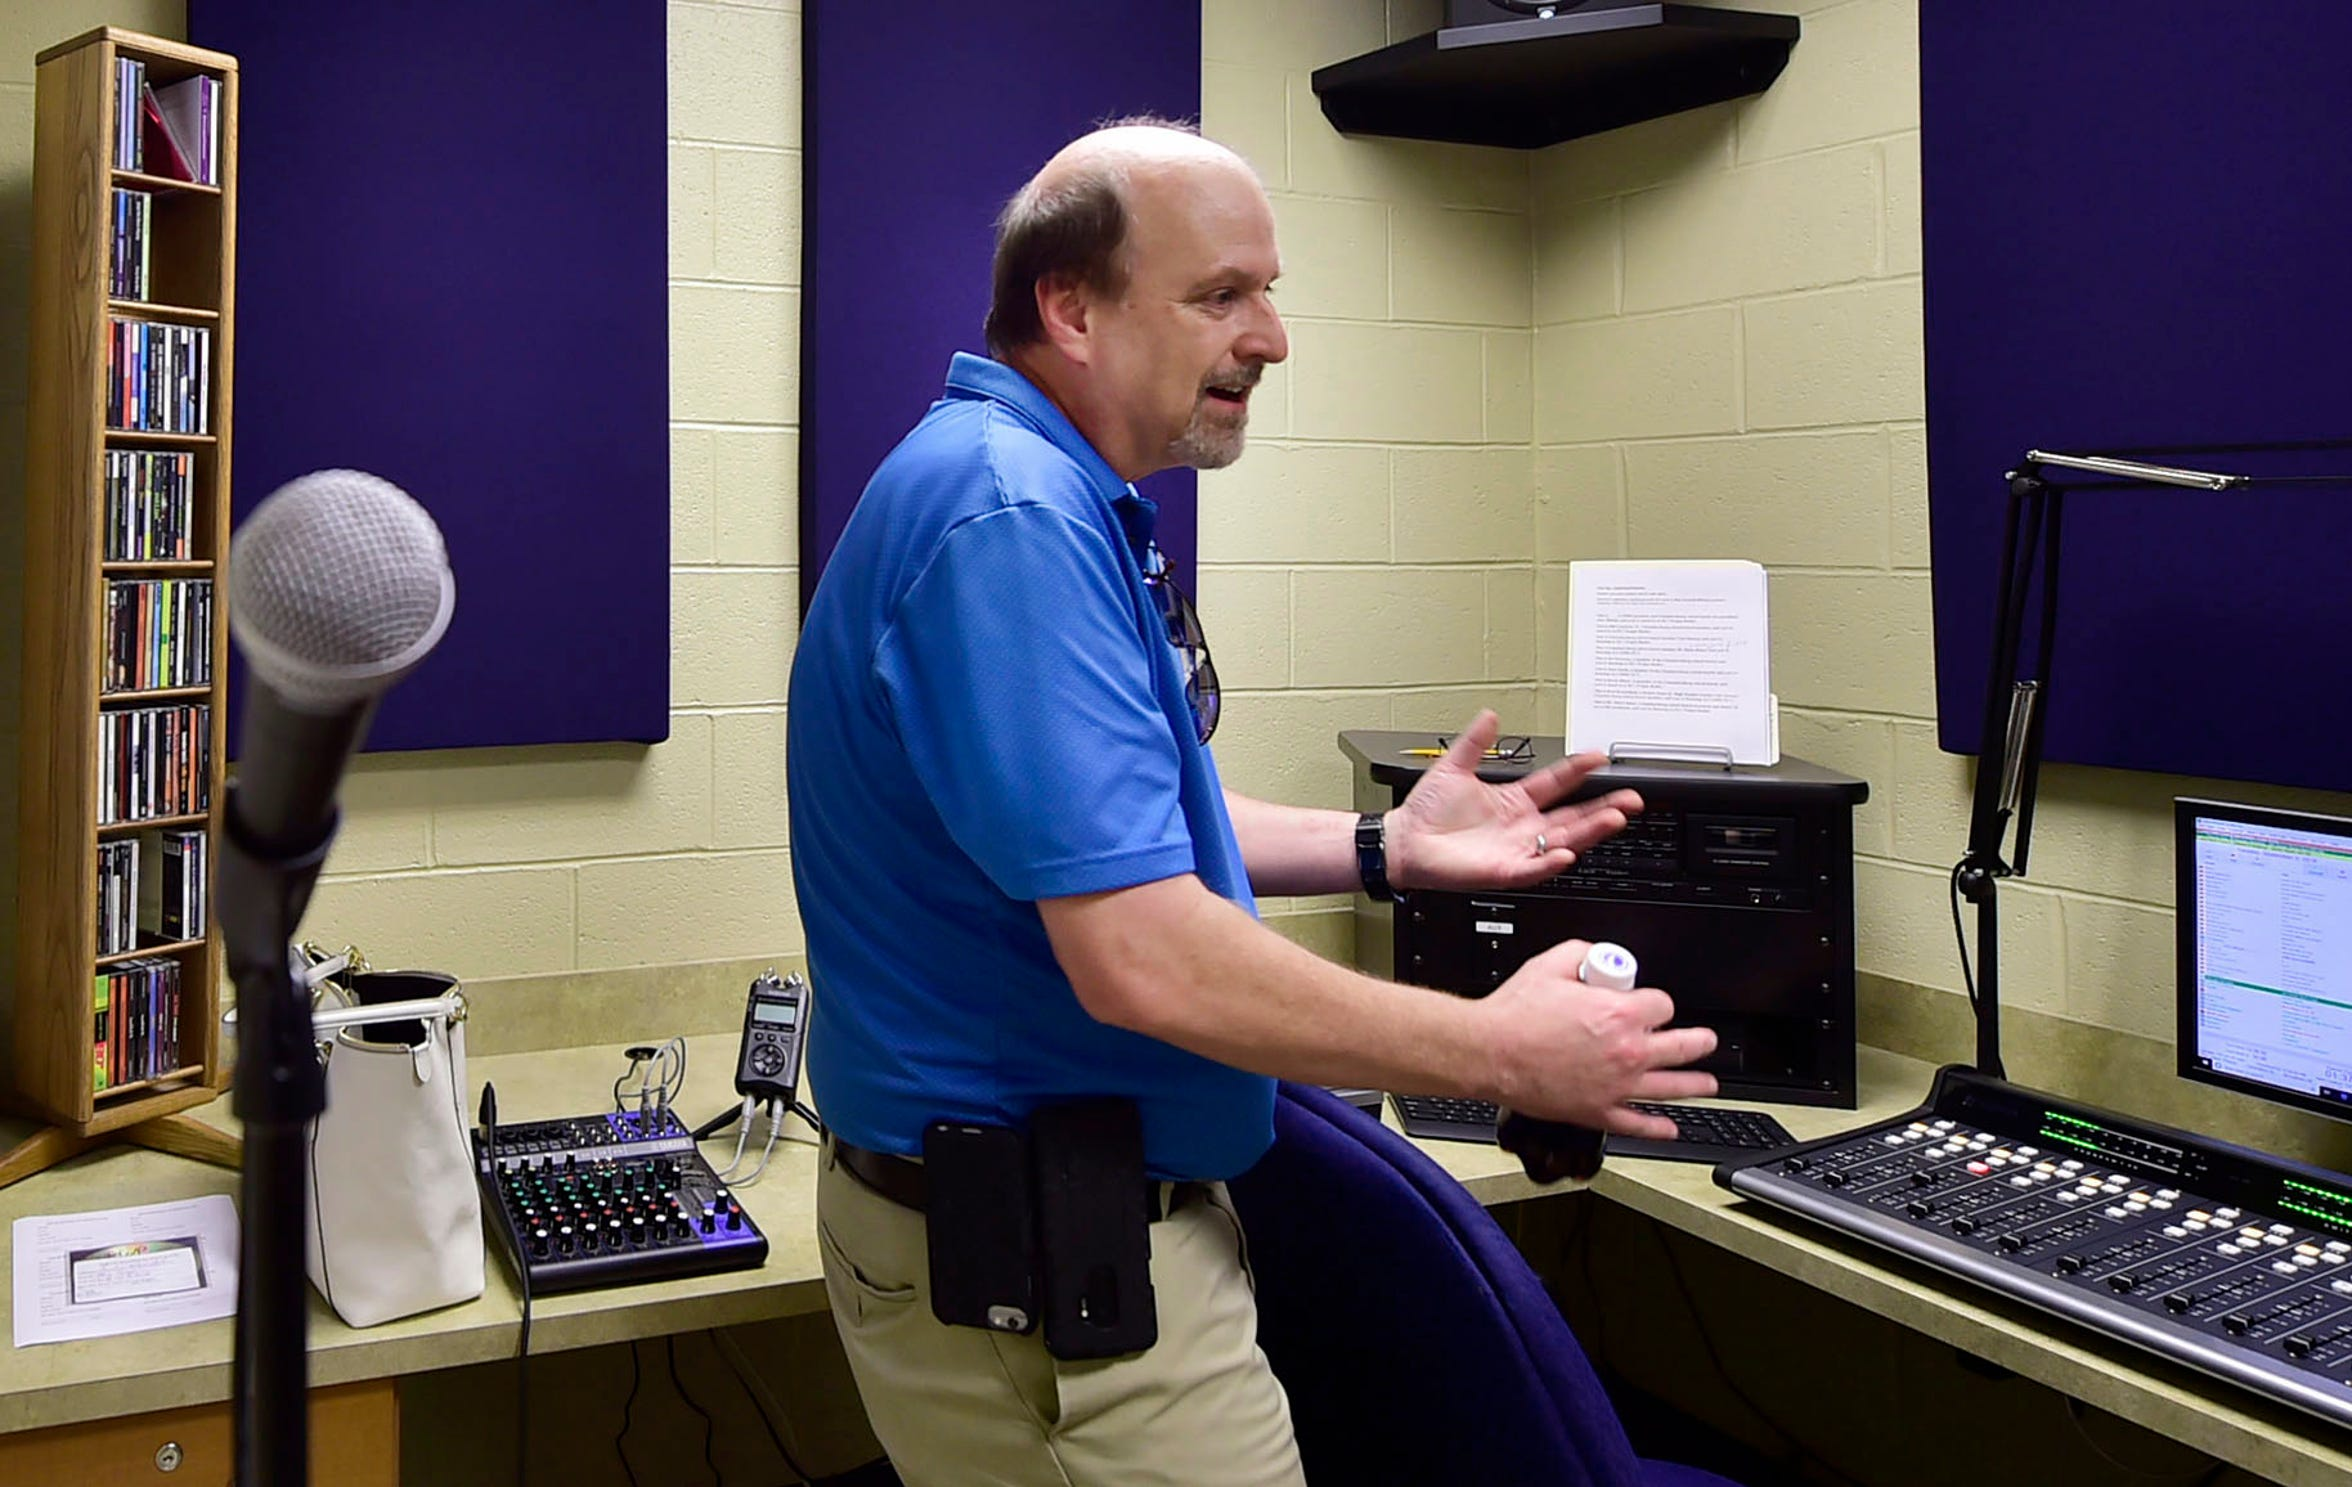 Dave Kirkpatrick, CASD network administrator, talks about the new radio station on Tuesday, Sept. 4, 2018. Chambersburg Area School District started a radio station about 18 months ago. Students are being trained to go on air.